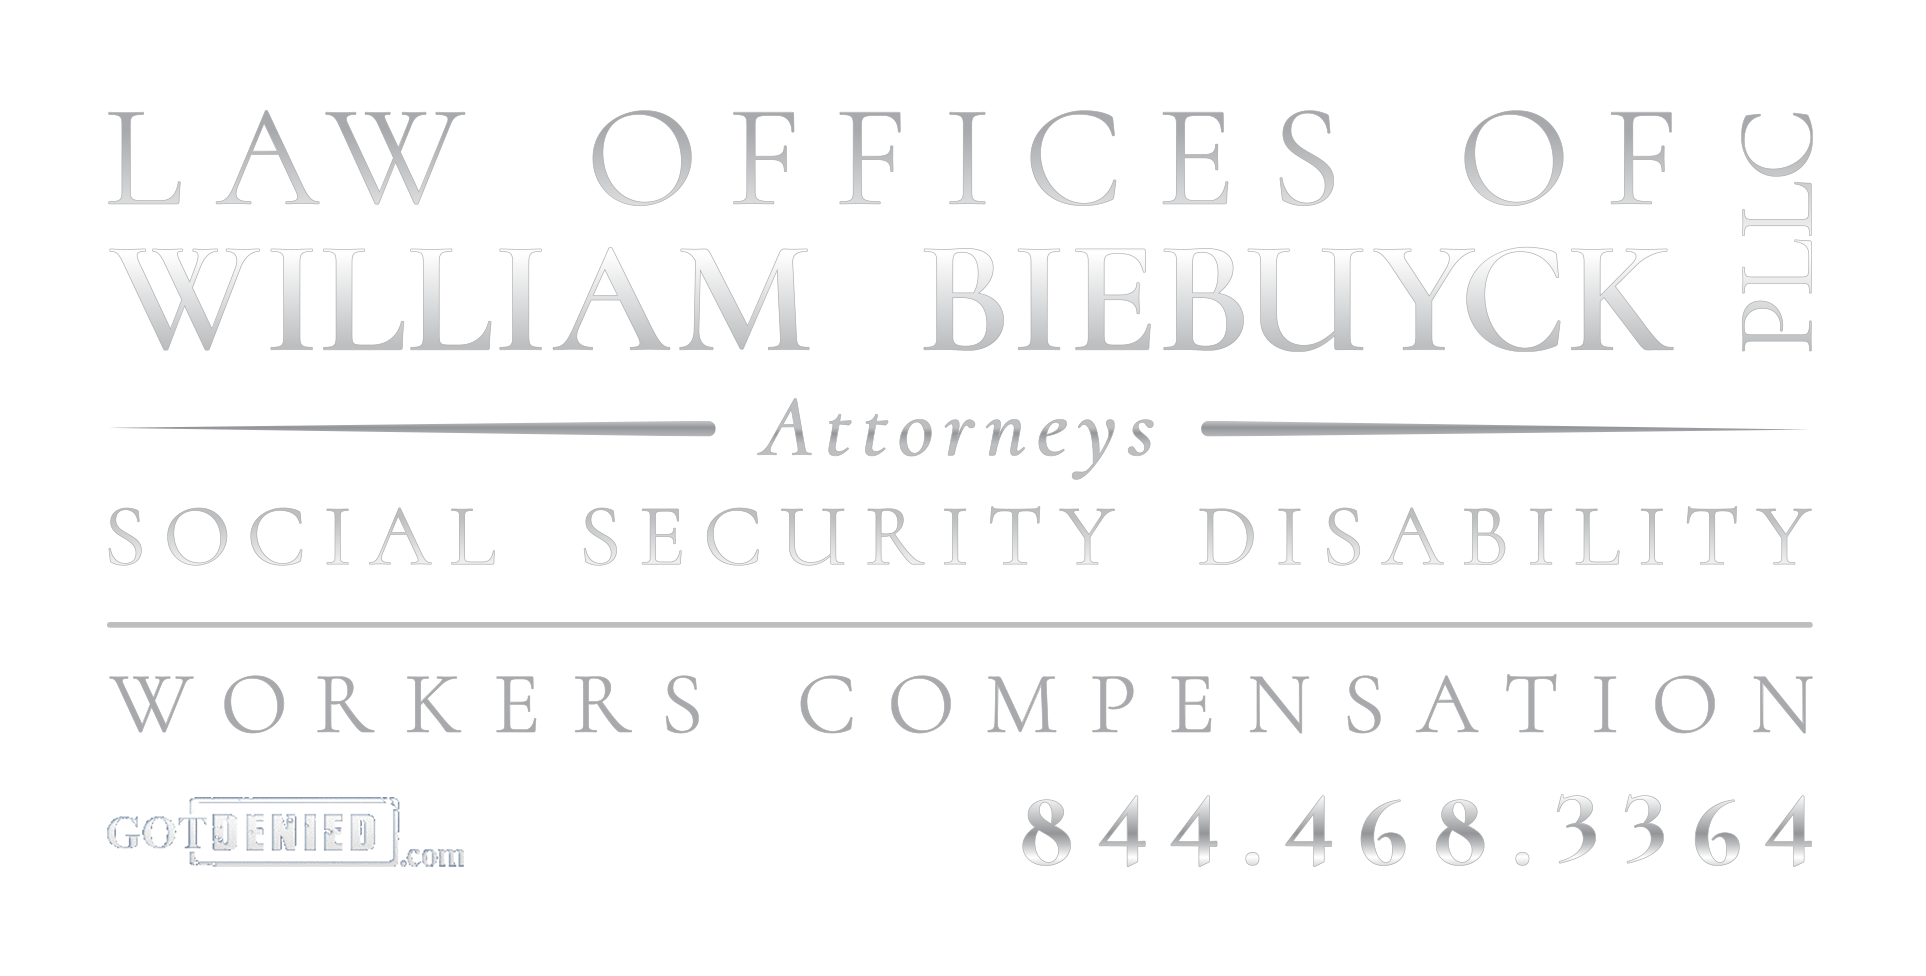 Law Offices of William Biebuyck